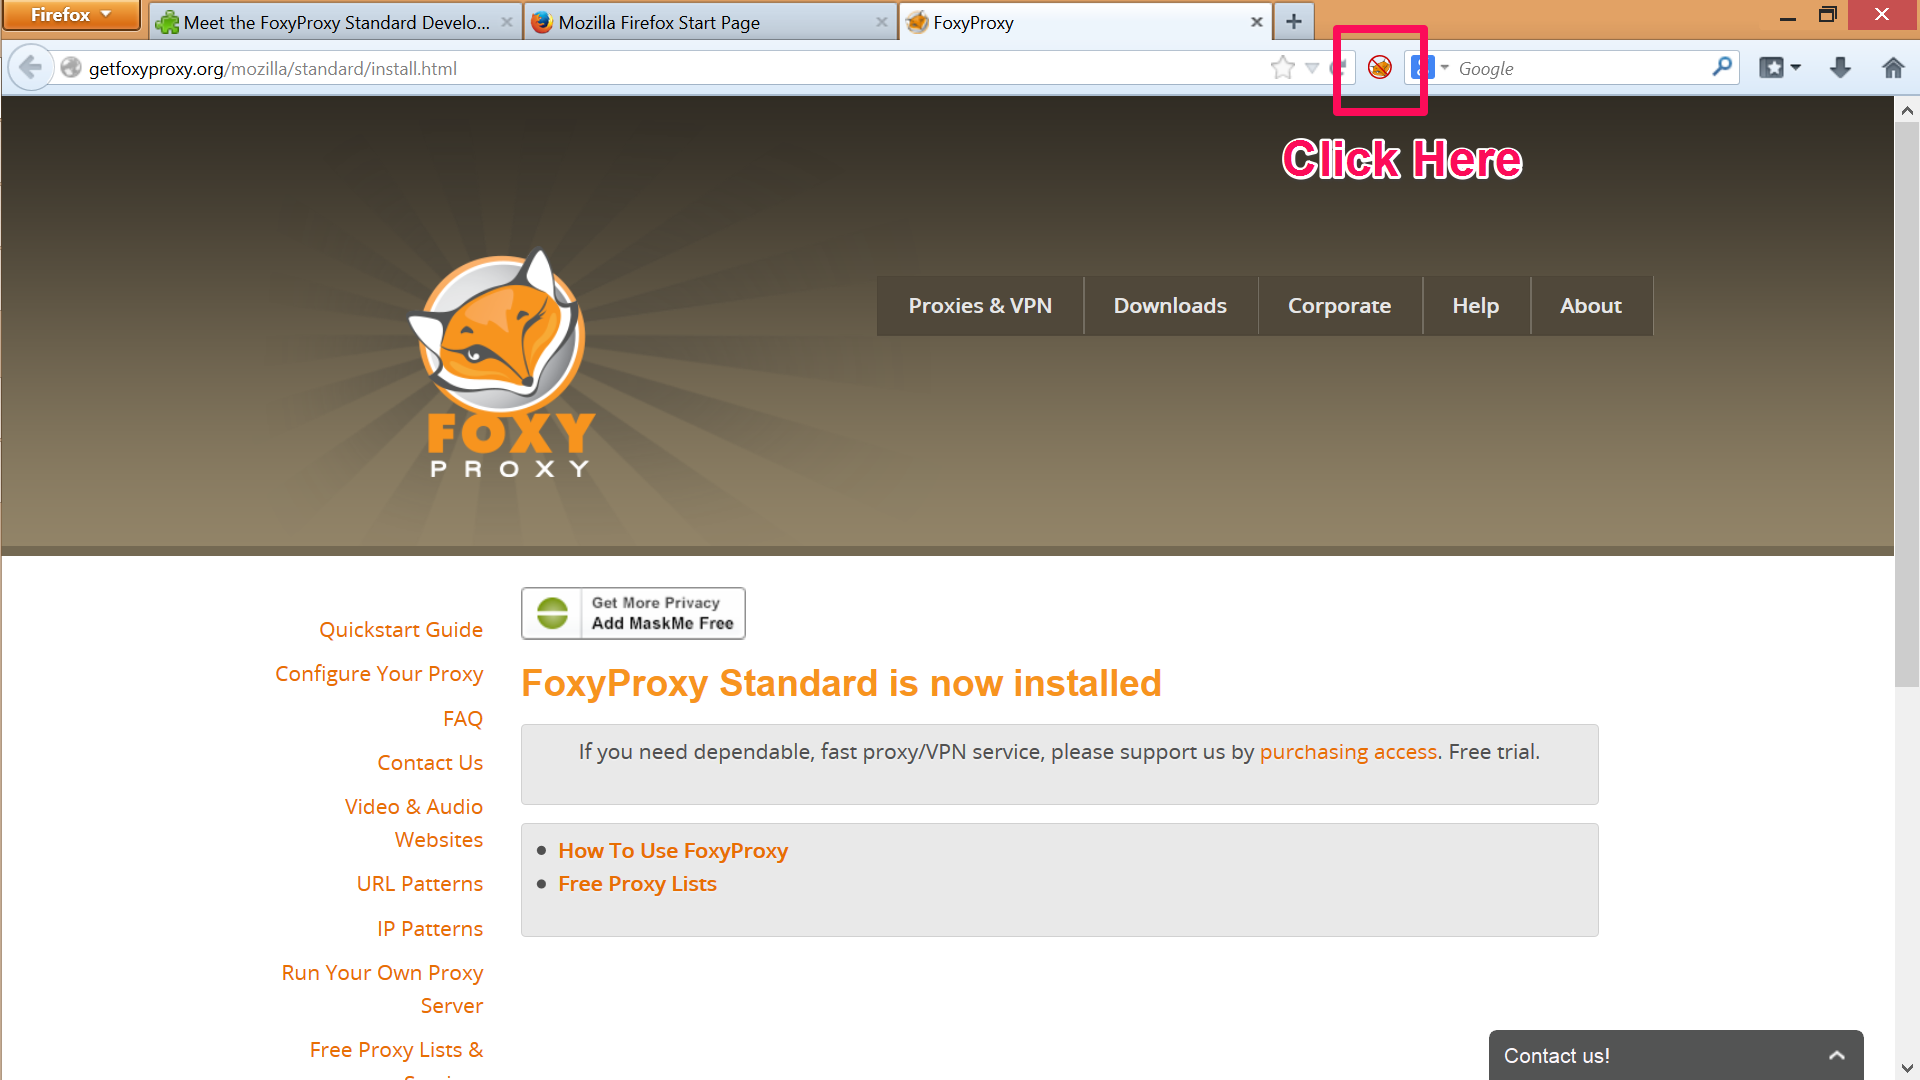 Click the FoxyProxy icon